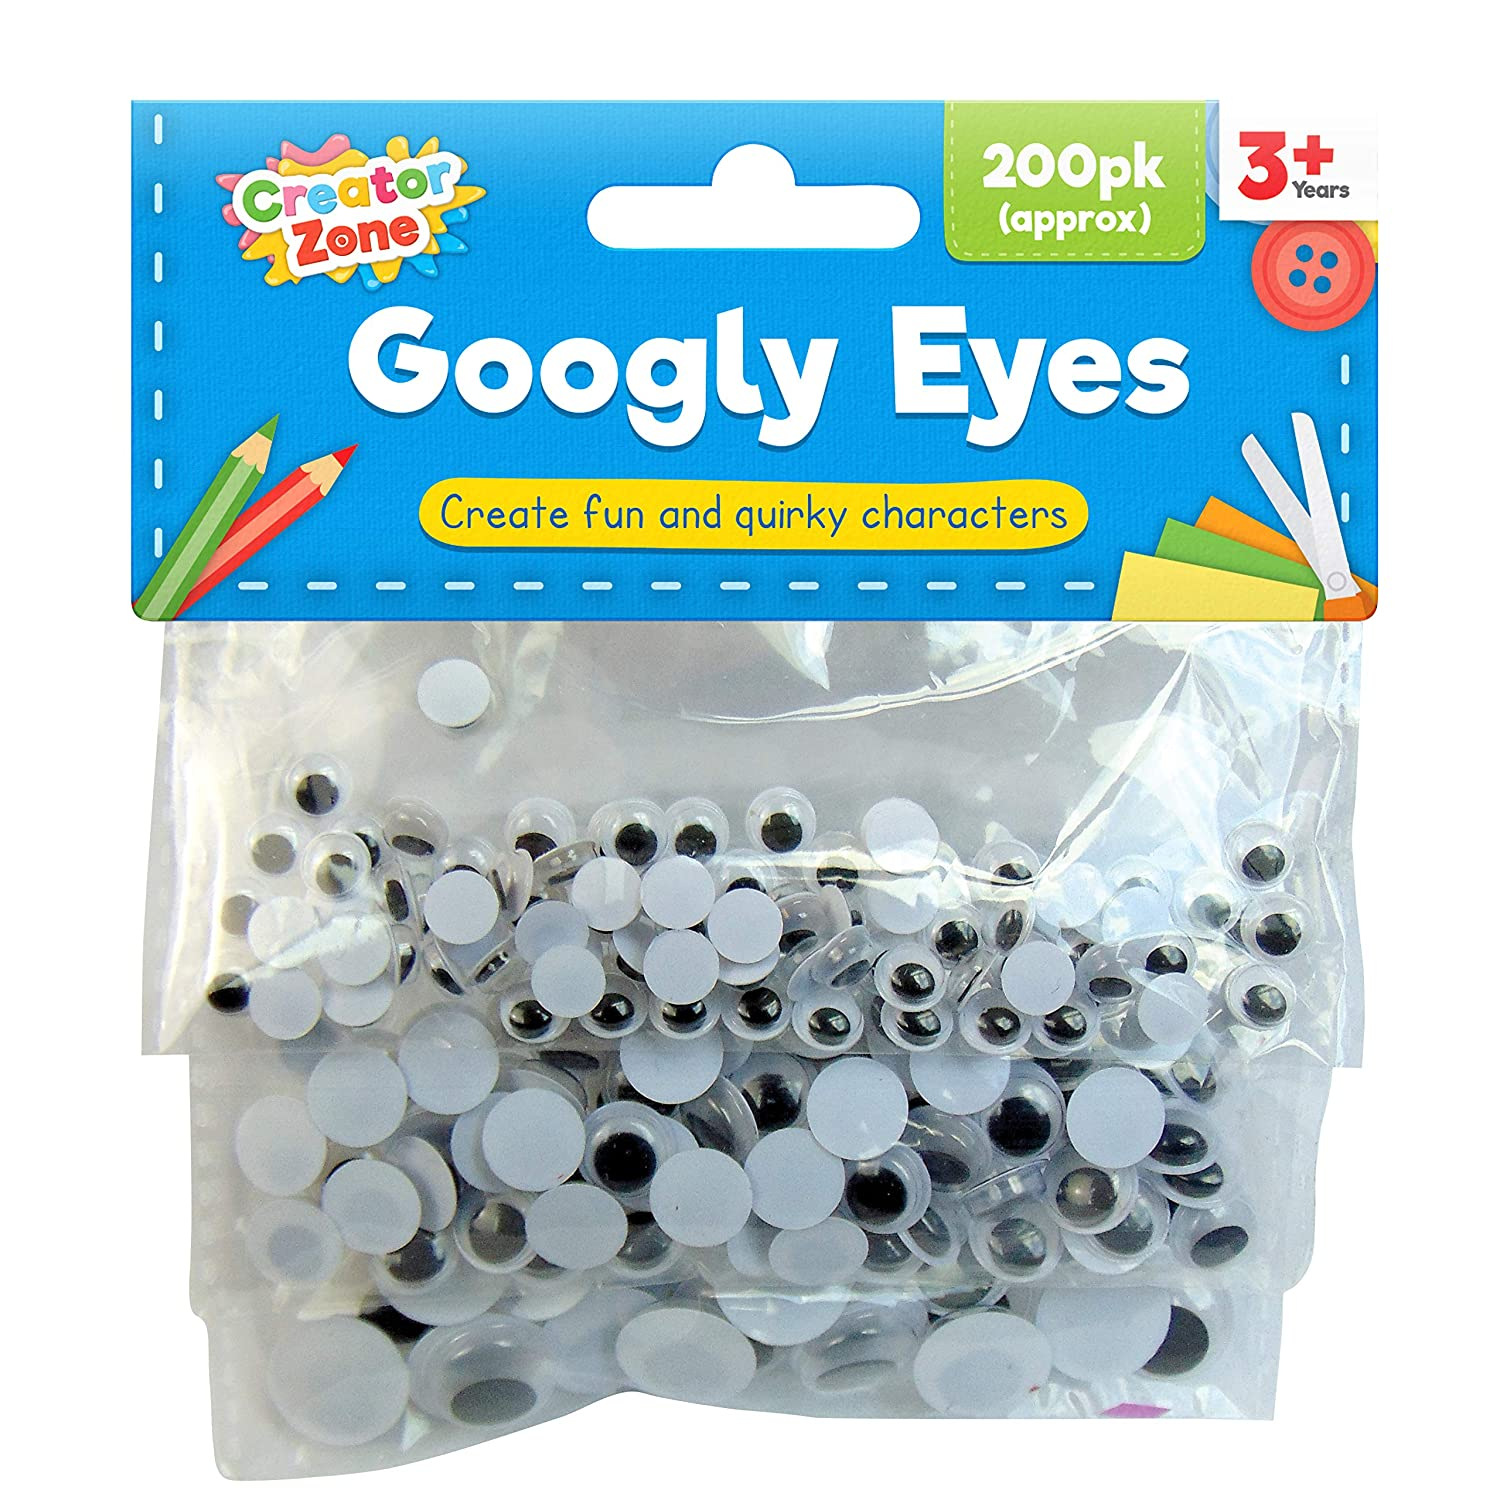 Creator Zone Wiggle Googly Eyes 600 Pieces | 3 x 200pk Stick on Eyes in 3 Assorted Sizes .